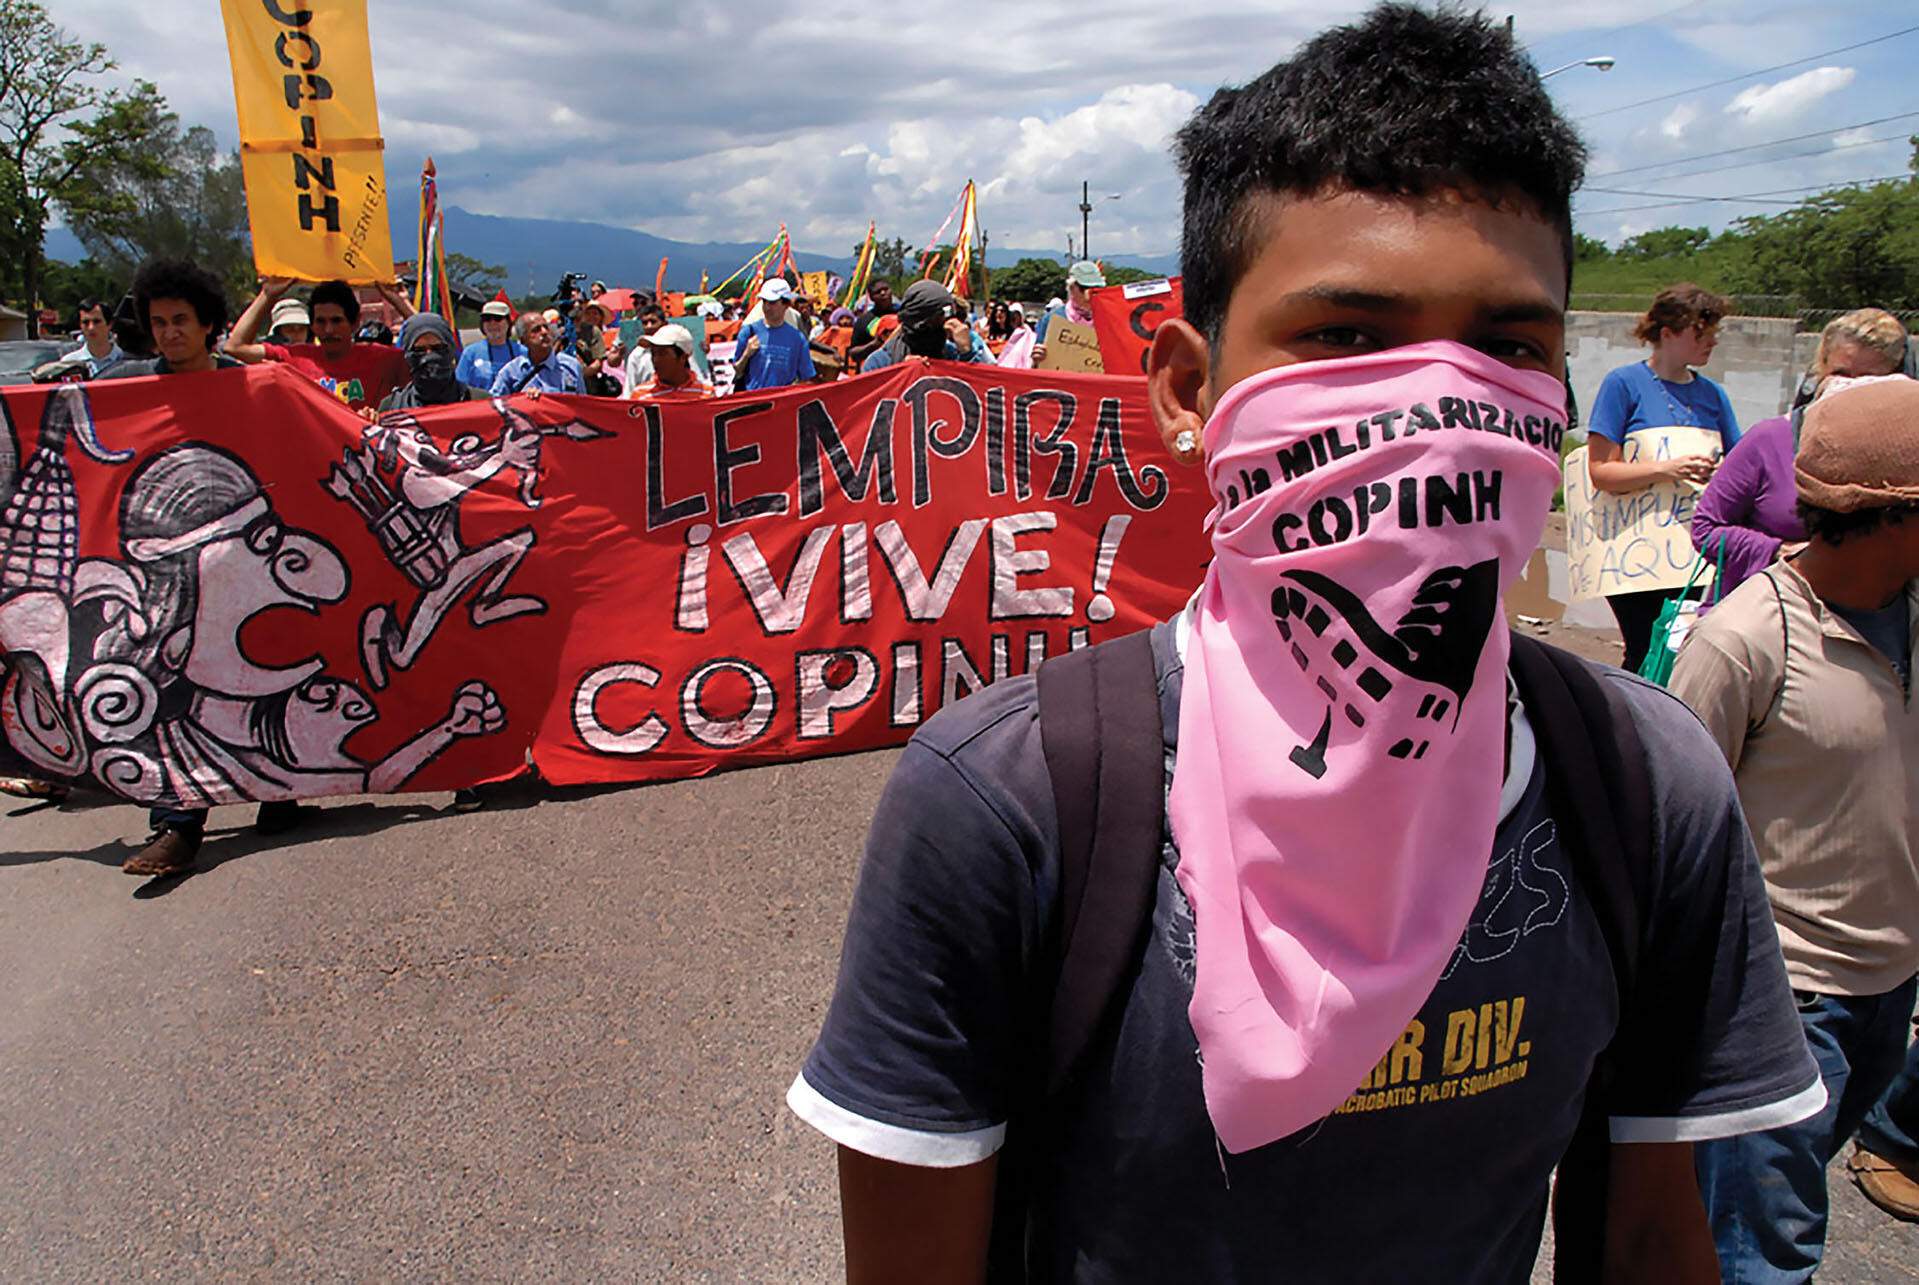 A COPINH protestor wearing a pink bandana as a mask marches in a protest against U.S. military bases in Honduras. (Photo by Felipe Canova.)